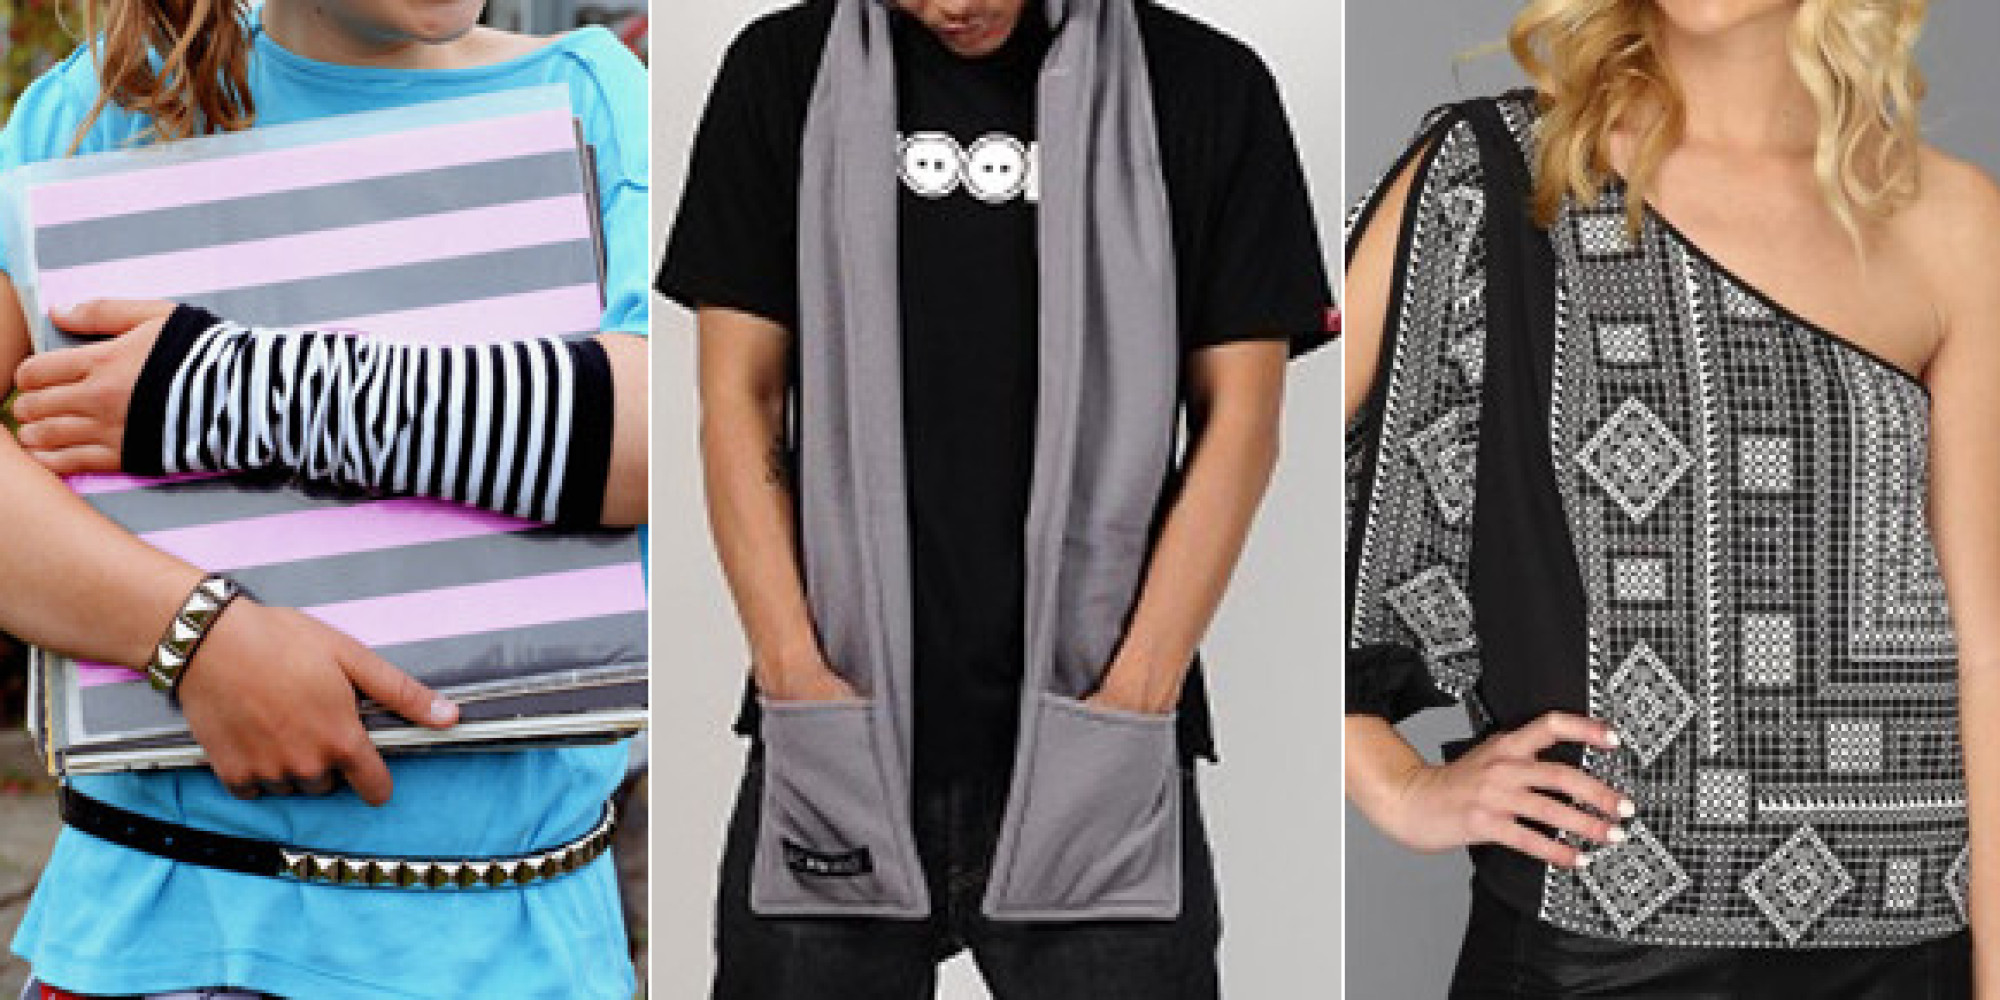 13 Clothing Items That Are Seriously Pointless